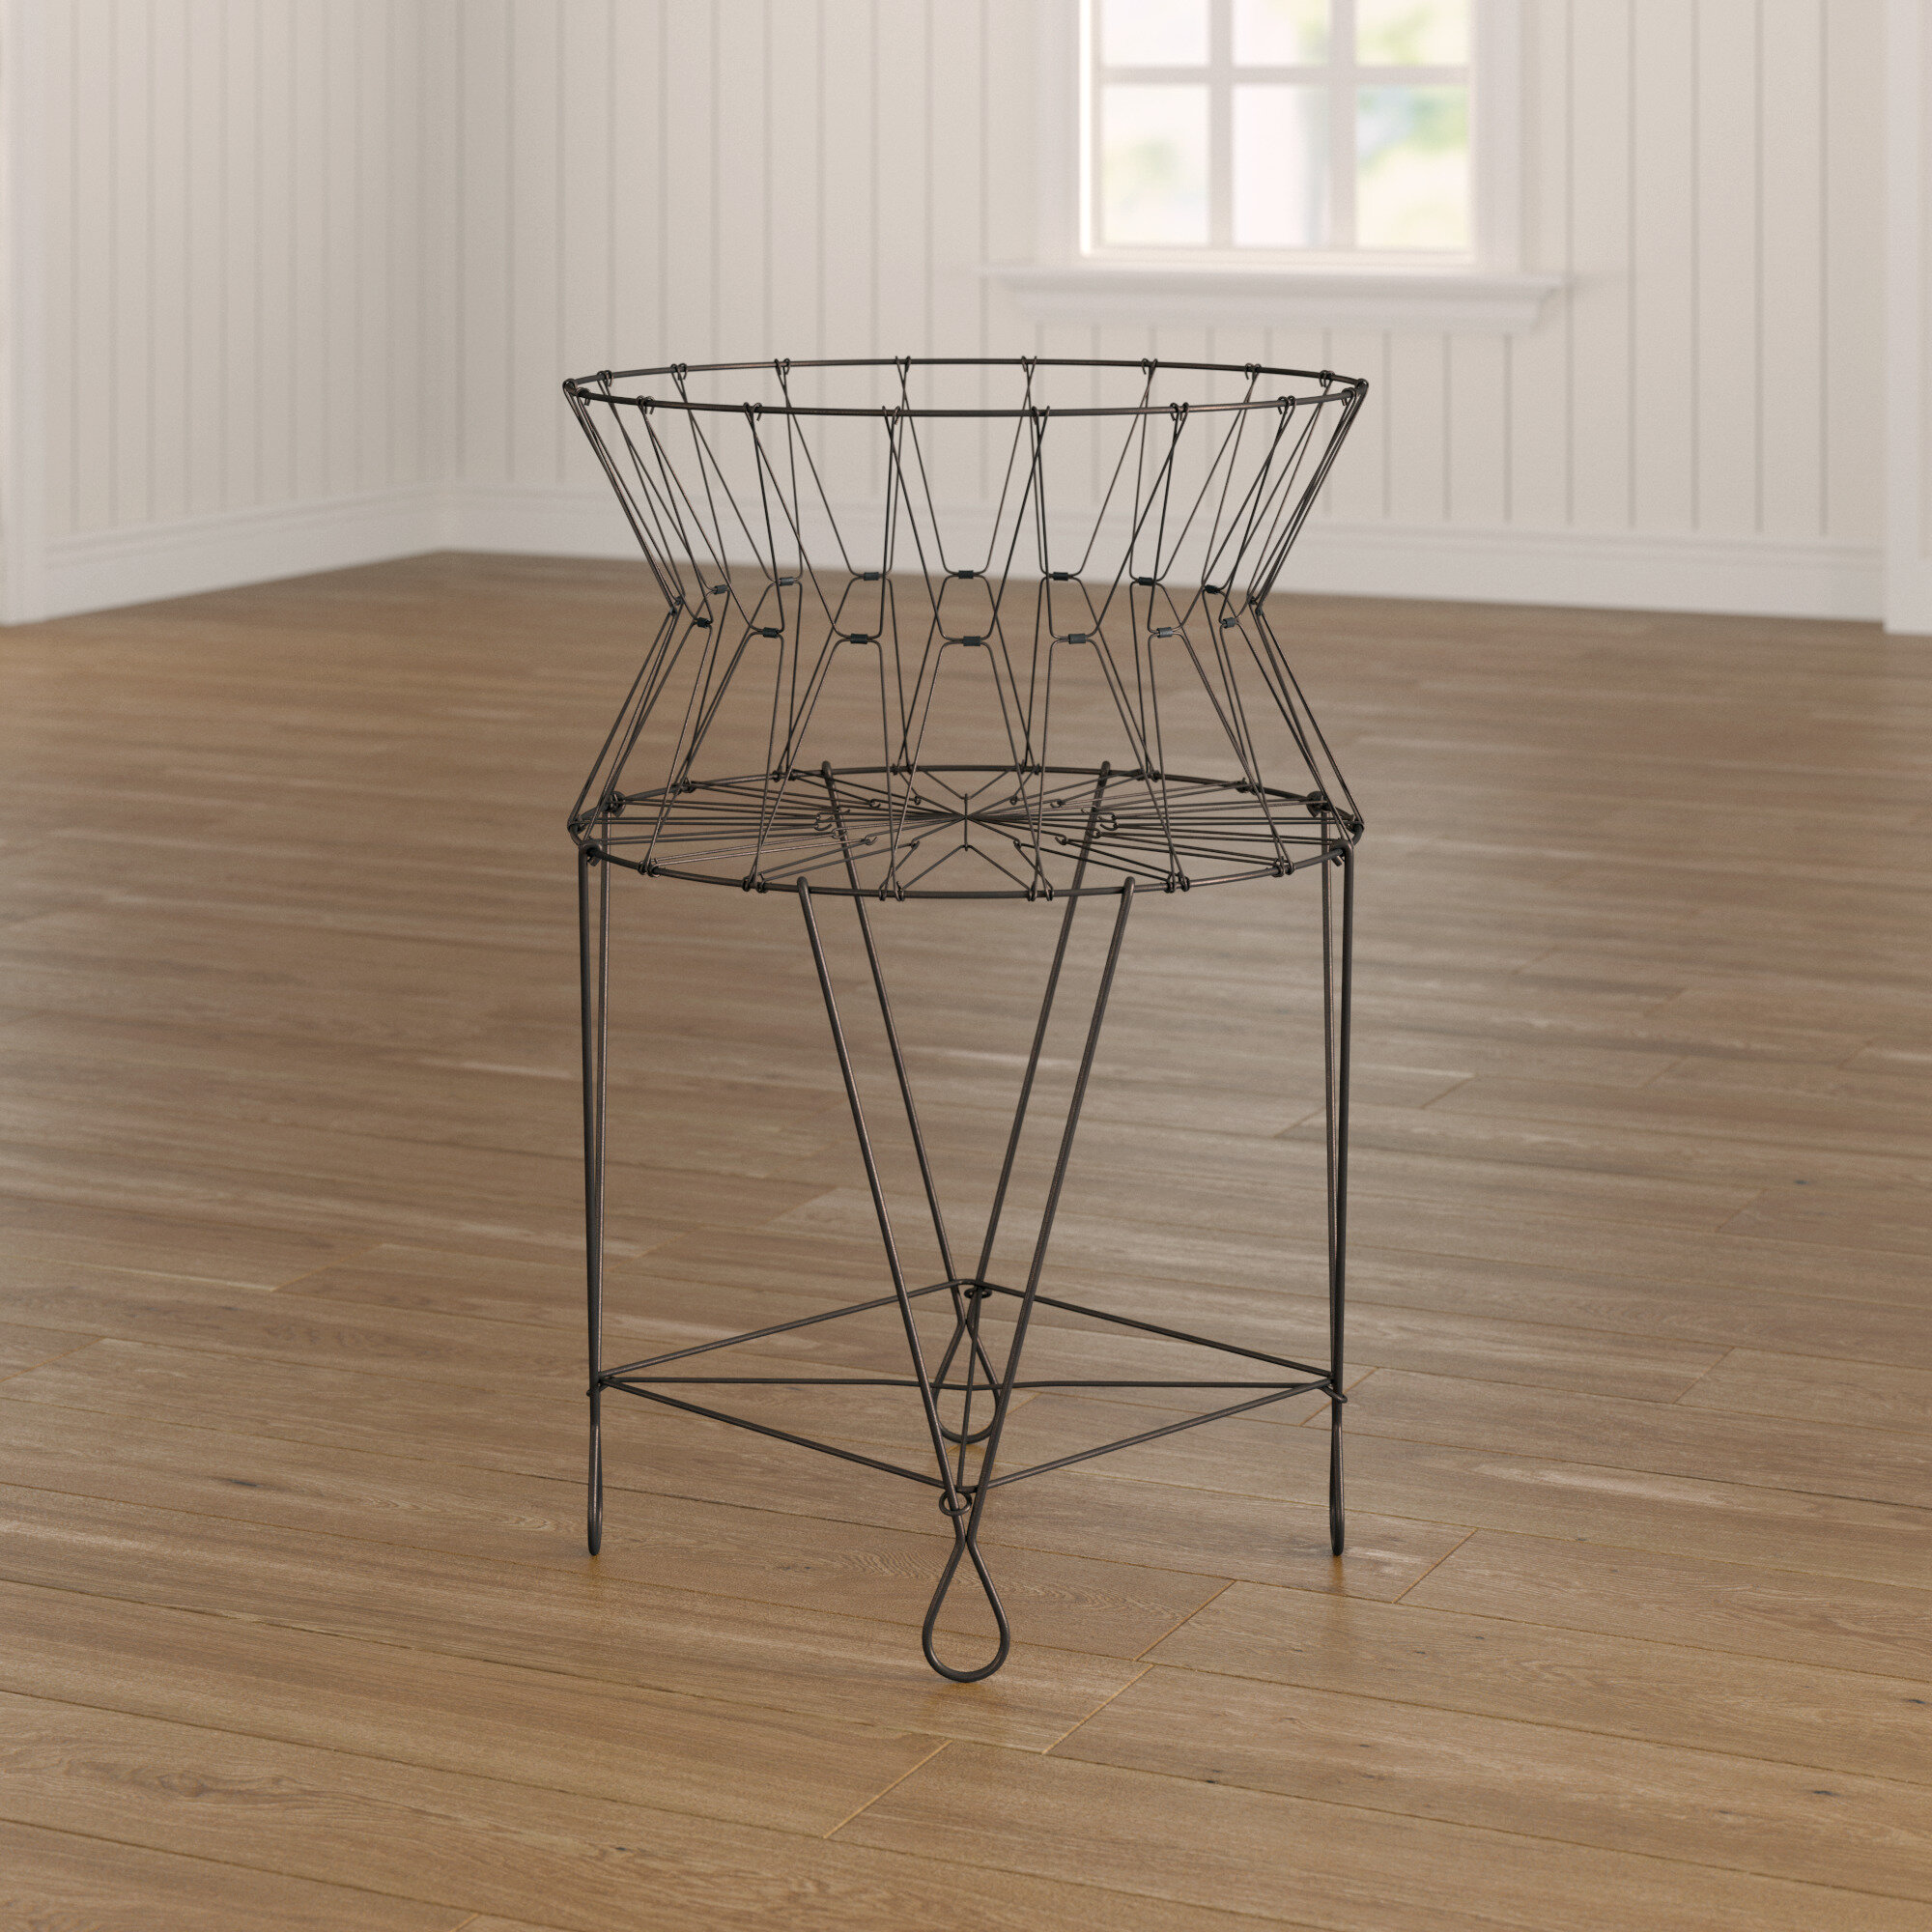 Wayfair Cottage Country Hampers Laundry Baskets You Ll Love In 2021